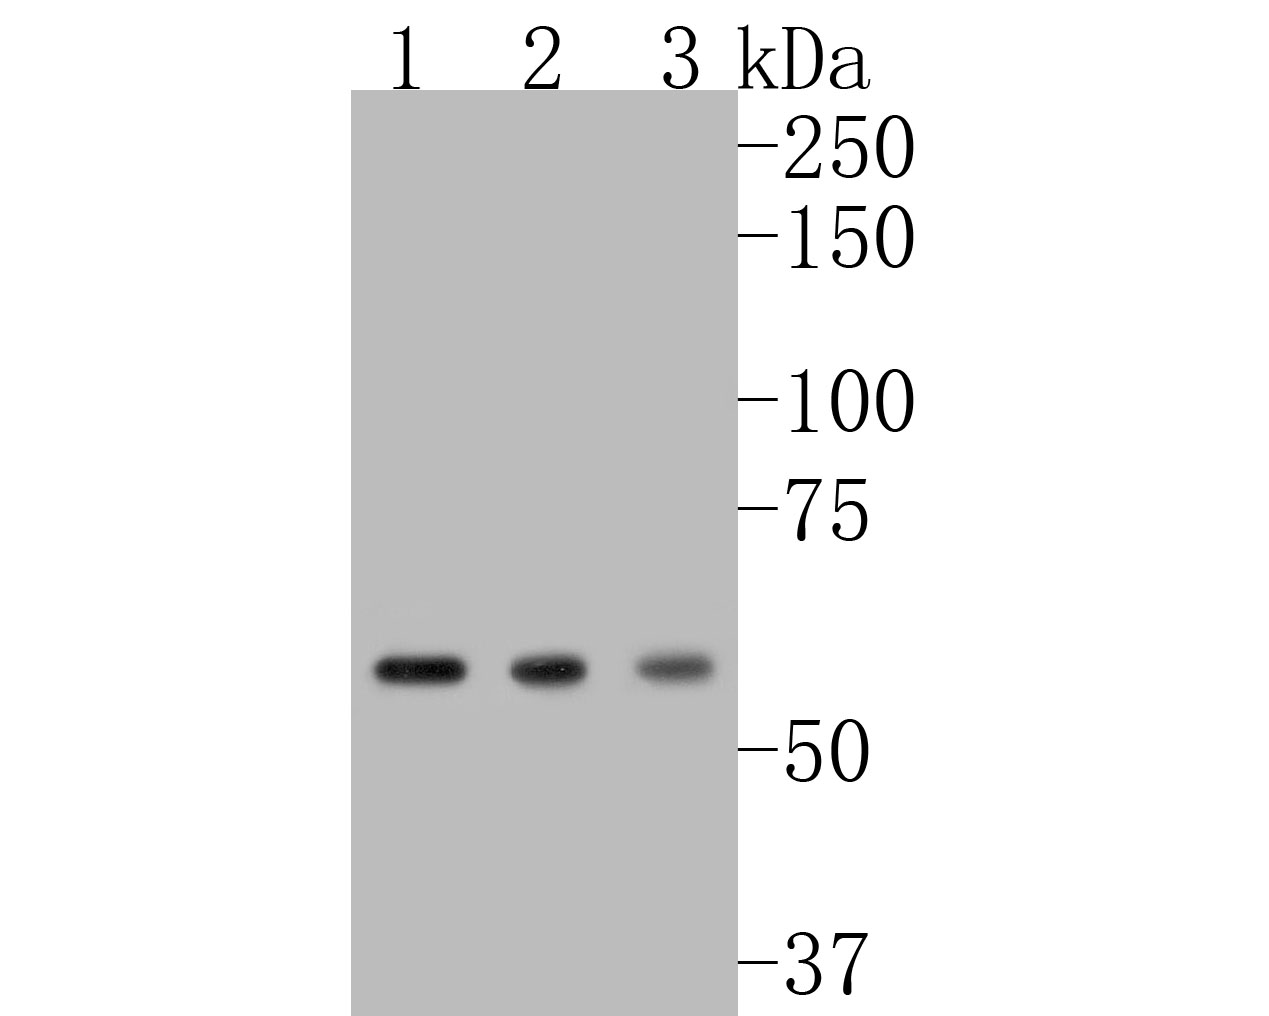 Western blot analysis of NOX2/gp91phox on different lysates. Proteins were transferred to a PVDF membrane and blocked with 5% BSA in PBS for 1 hour at room temperature. The primary antibody (ET1611-44, 1/500) was used in 5% BSA at room temperature for 2 hours. Goat Anti-Rabbit IgG - HRP Secondary Antibody (HA1001) at 1:5,000 dilution was used for 1 hour at room temperature.<br /> Positive control: <br /> Lane 1: MCF-7 cell lysate<br /> Lane 2: THP-1 cell lysate<br /> Lane 3: Daudi cell lysate